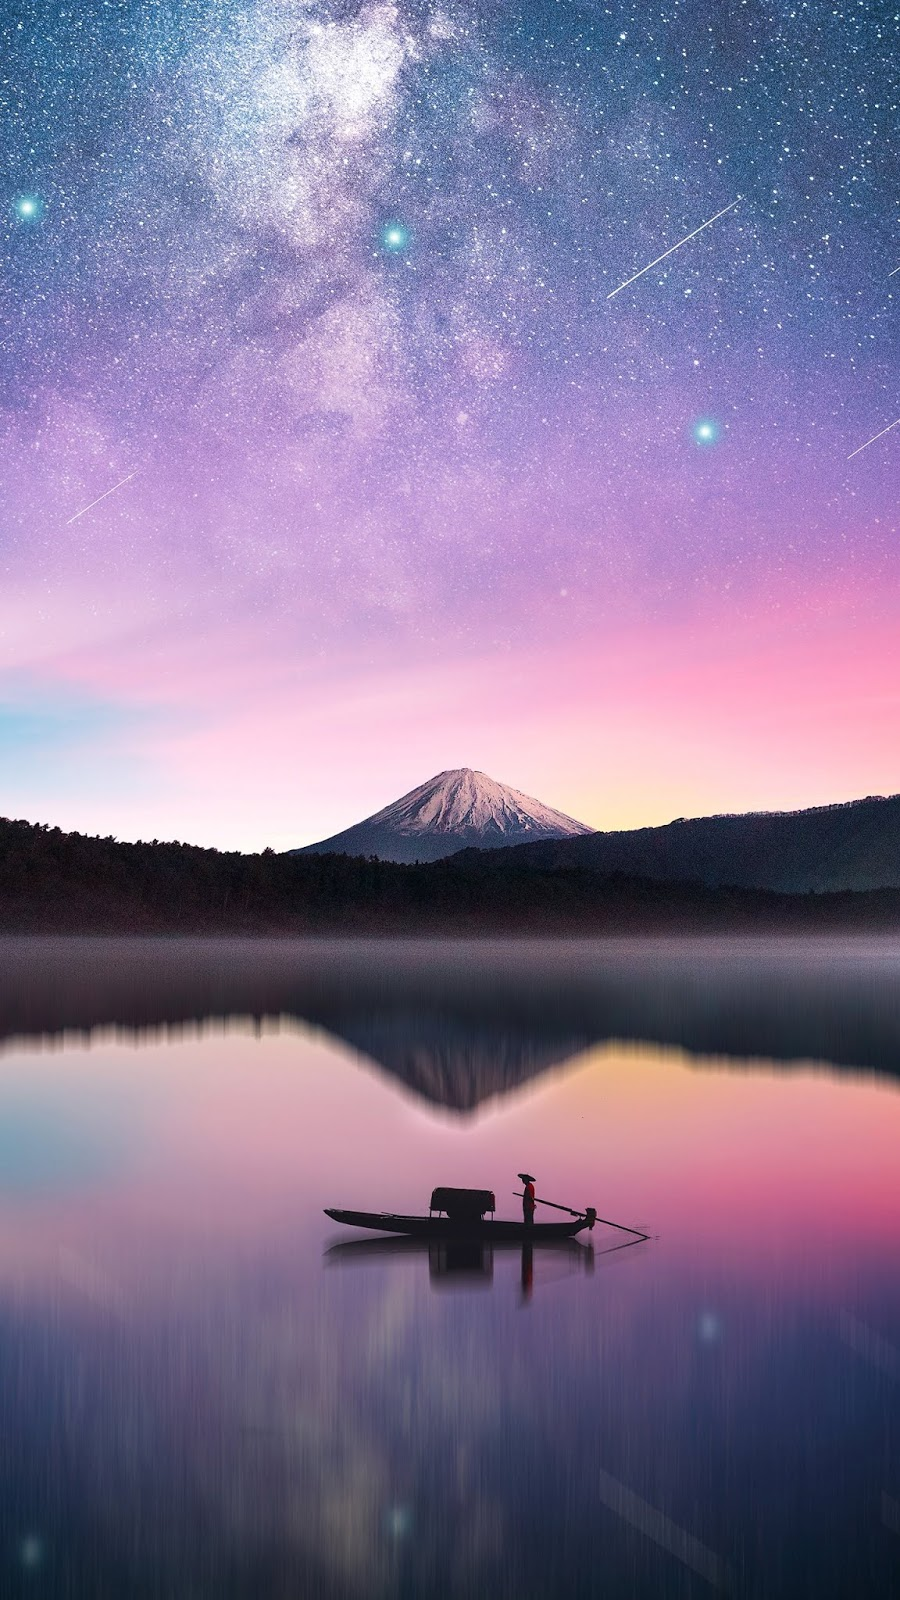 Milky Way in mount Fuji mobile wallpaper